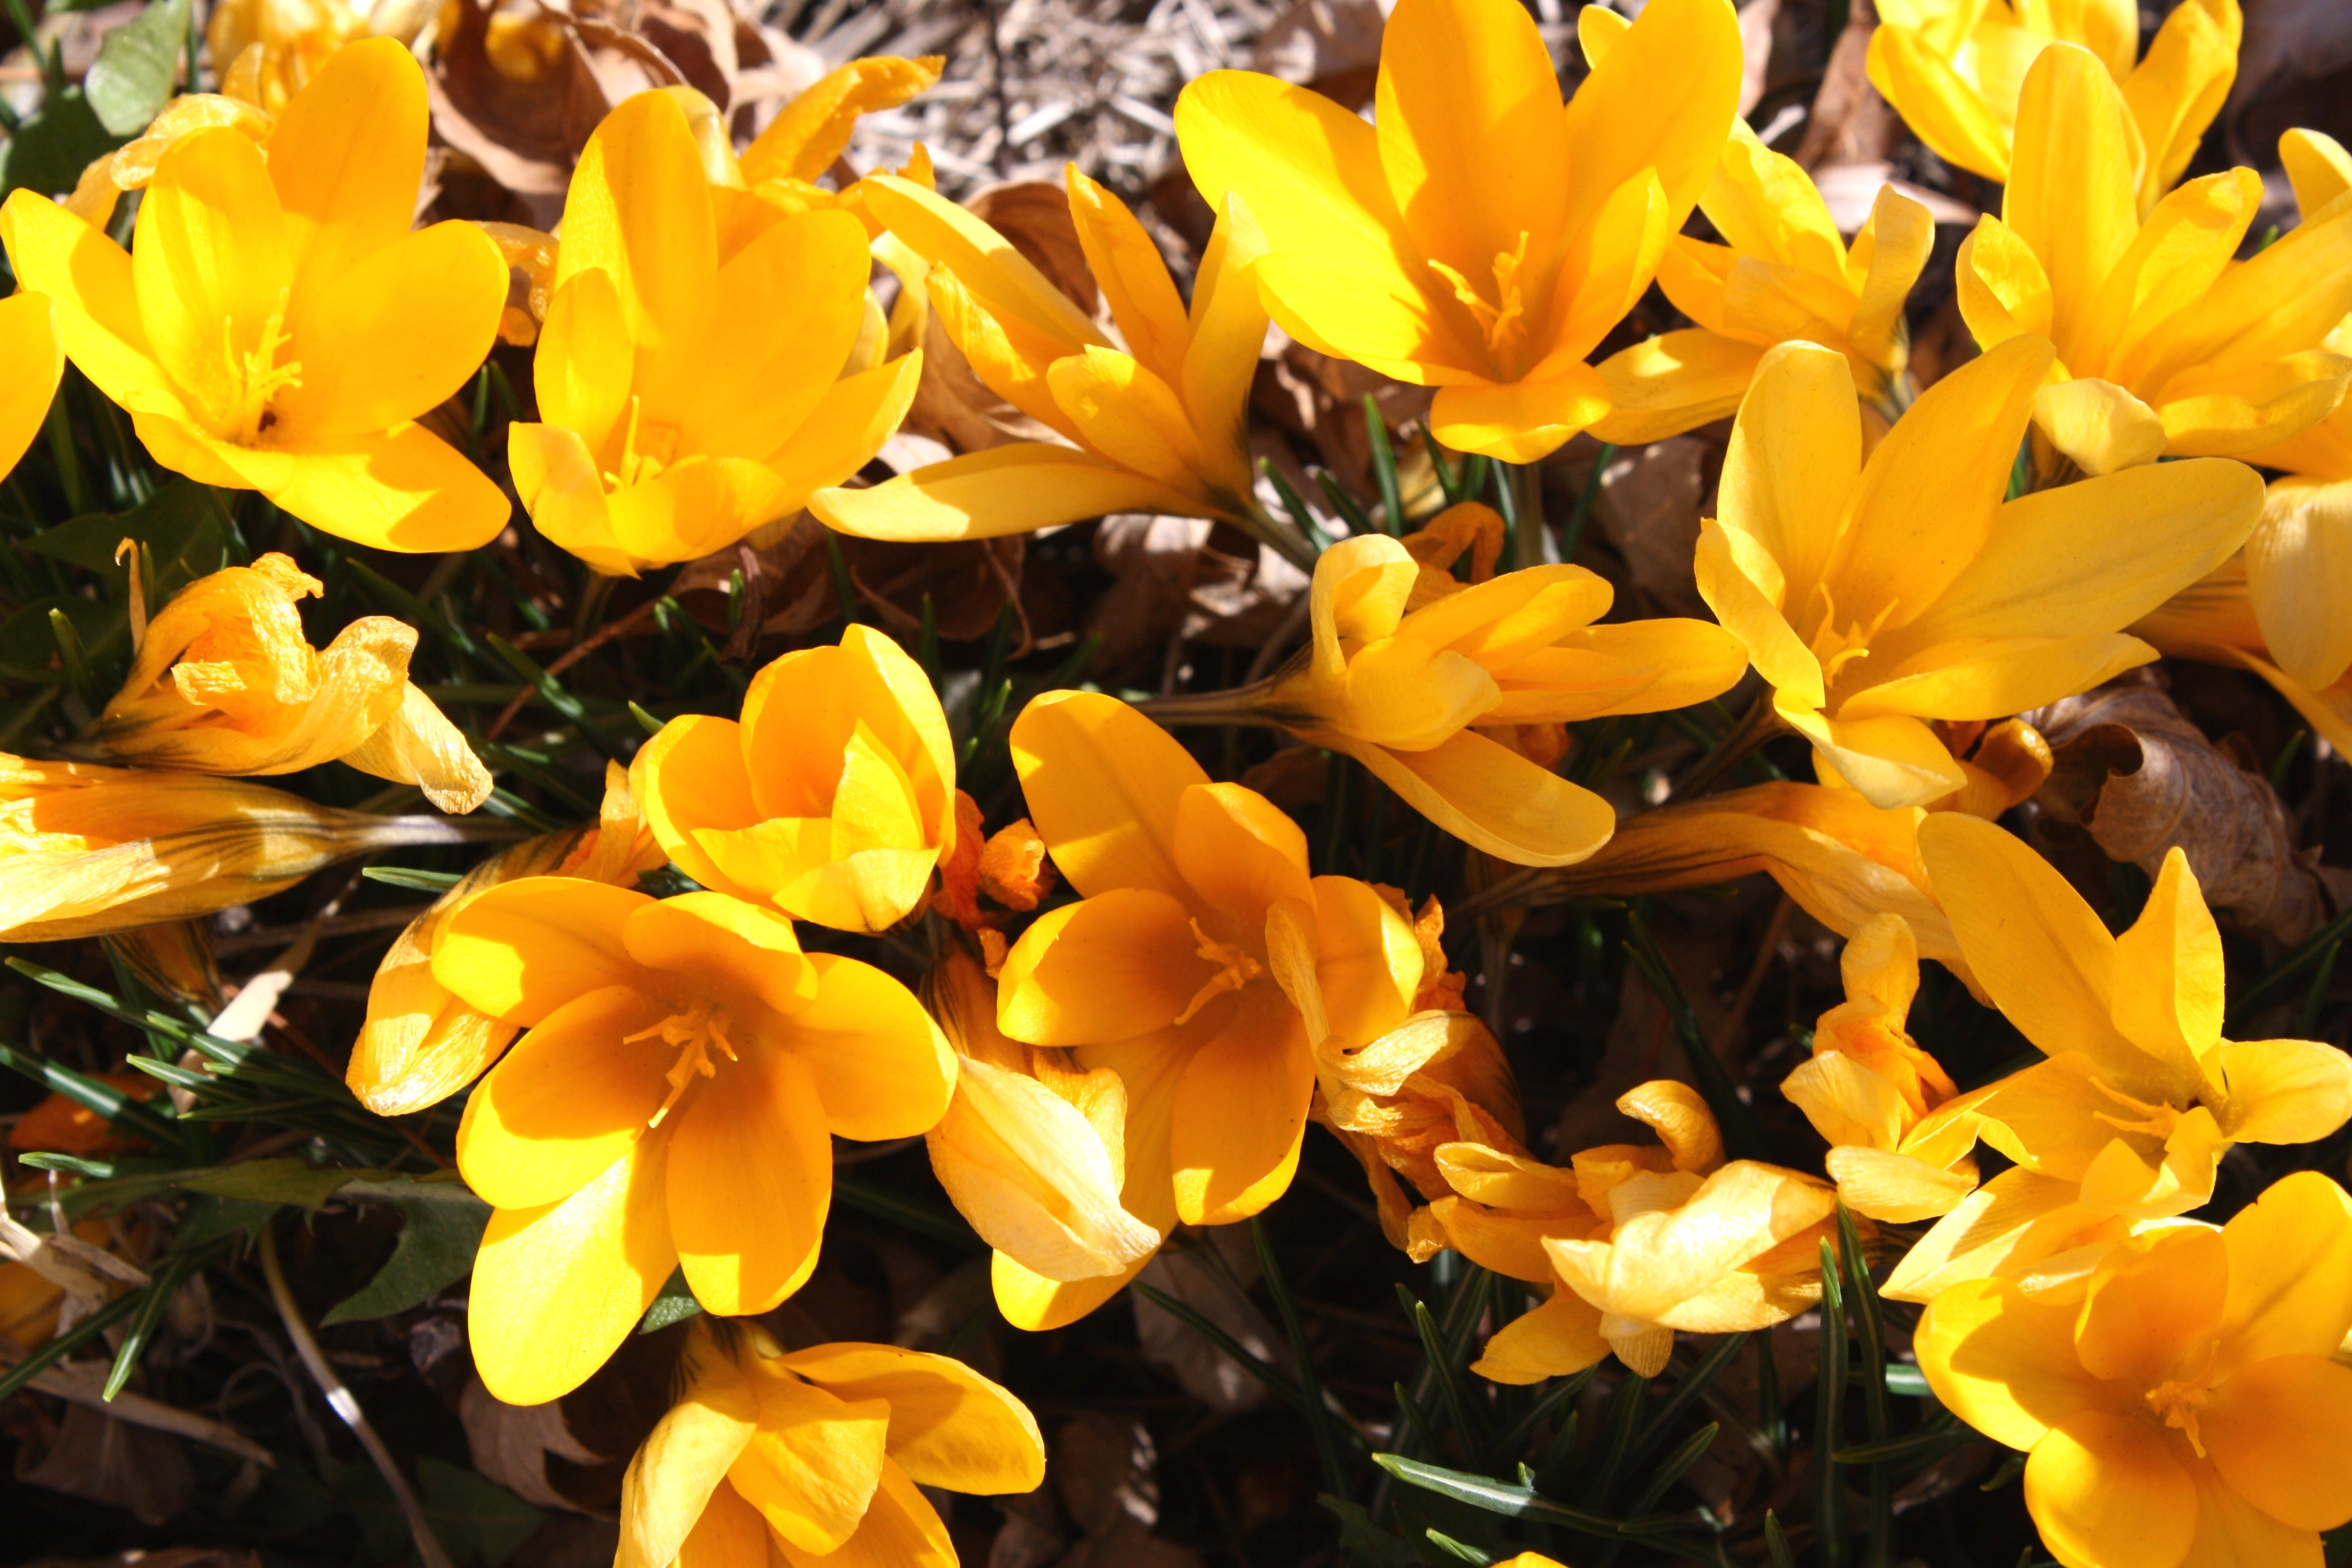 Yellow crocus flowers picture free photograph photos public domain yellow crocus flowers free high resolution photo dimensions 3888 2592 mightylinksfo